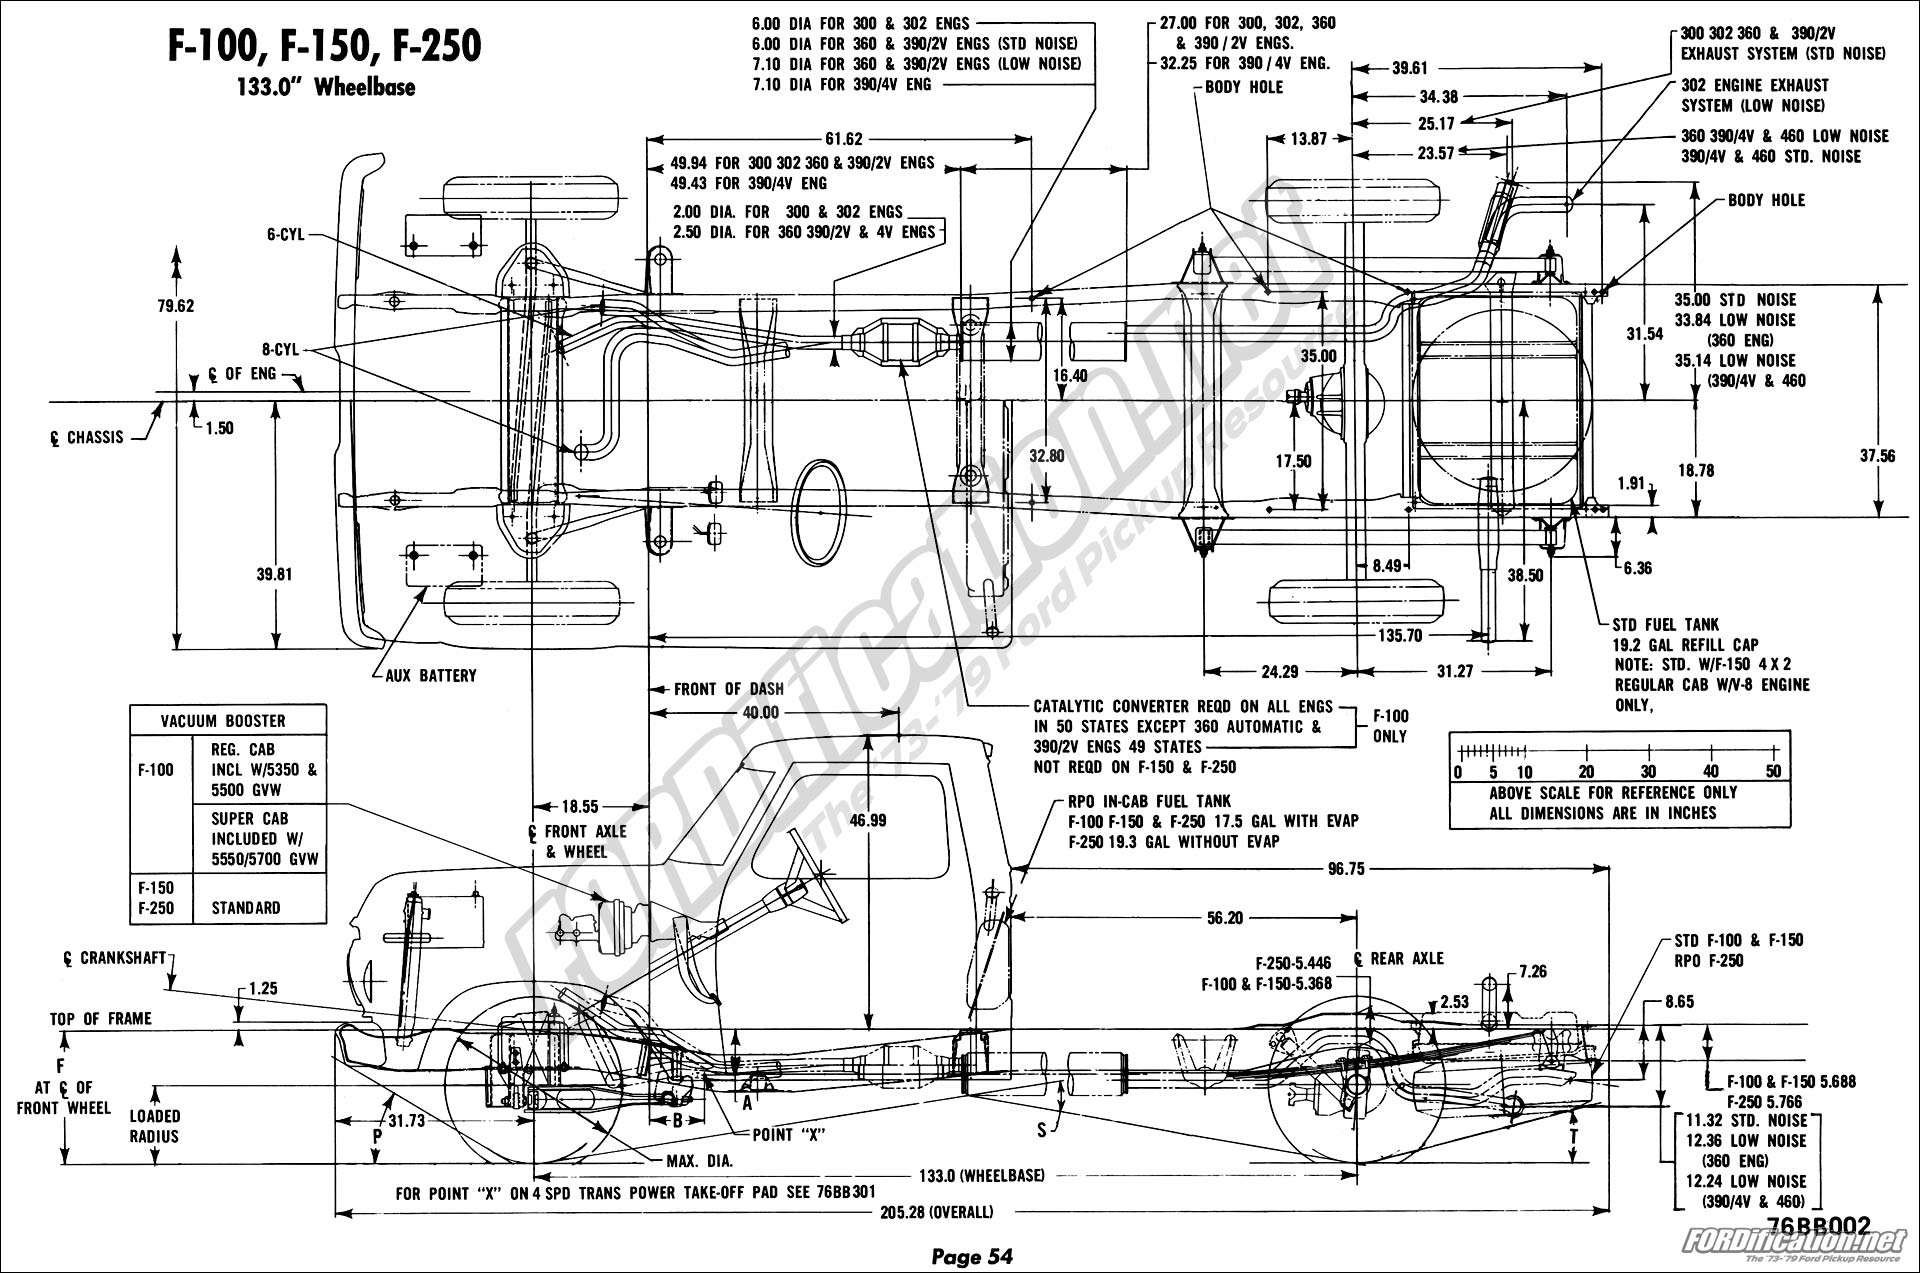 1964 Mustang Wiring Diagrams likewise Origami Dog Diagram moreover Bodybuilder76 furthermore 1131609 Ford 3000 Tractor Wiring Diagrams moreover 1967 72 Chevy Truck Cab And Chassis Wiring Diagrams 68 Chevy C10. on 1965 chevy wiring diagram